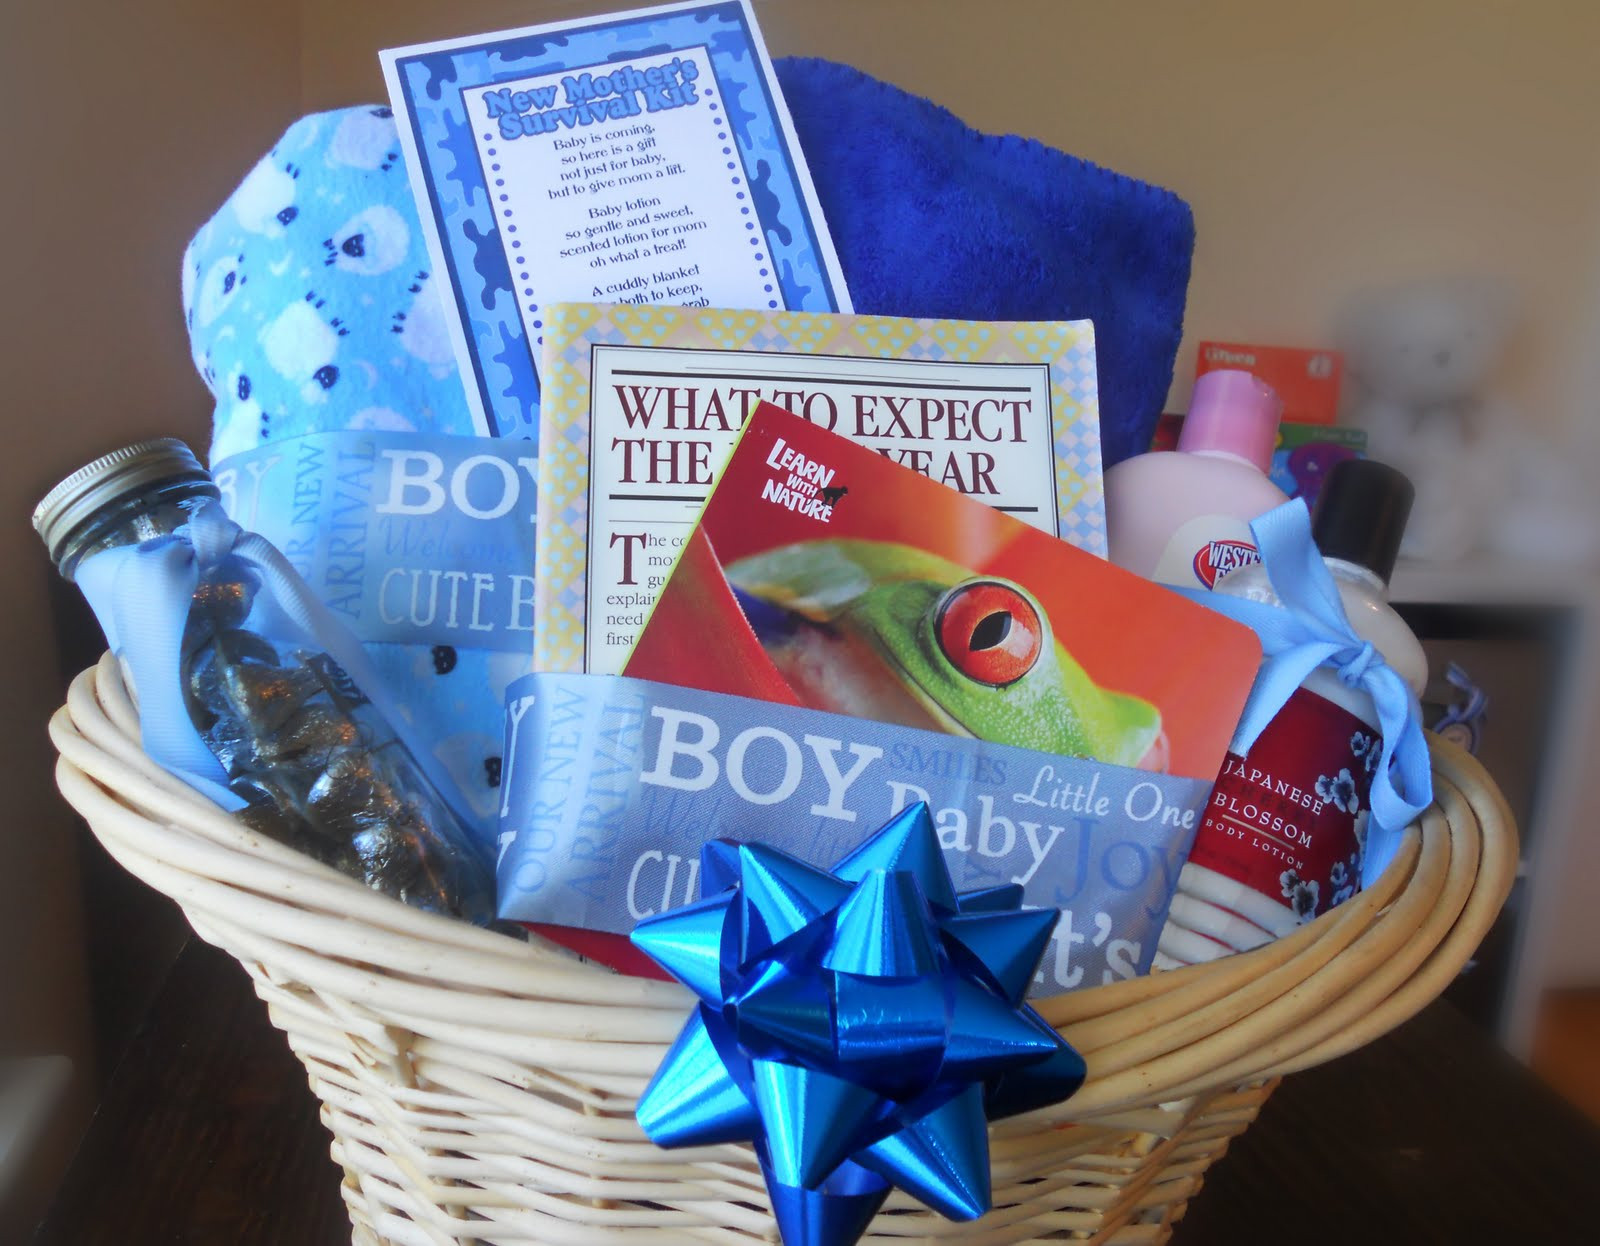 Baby Shower Gift List Ideas  Darling Doodles Baby Shower Gift Survival Kit